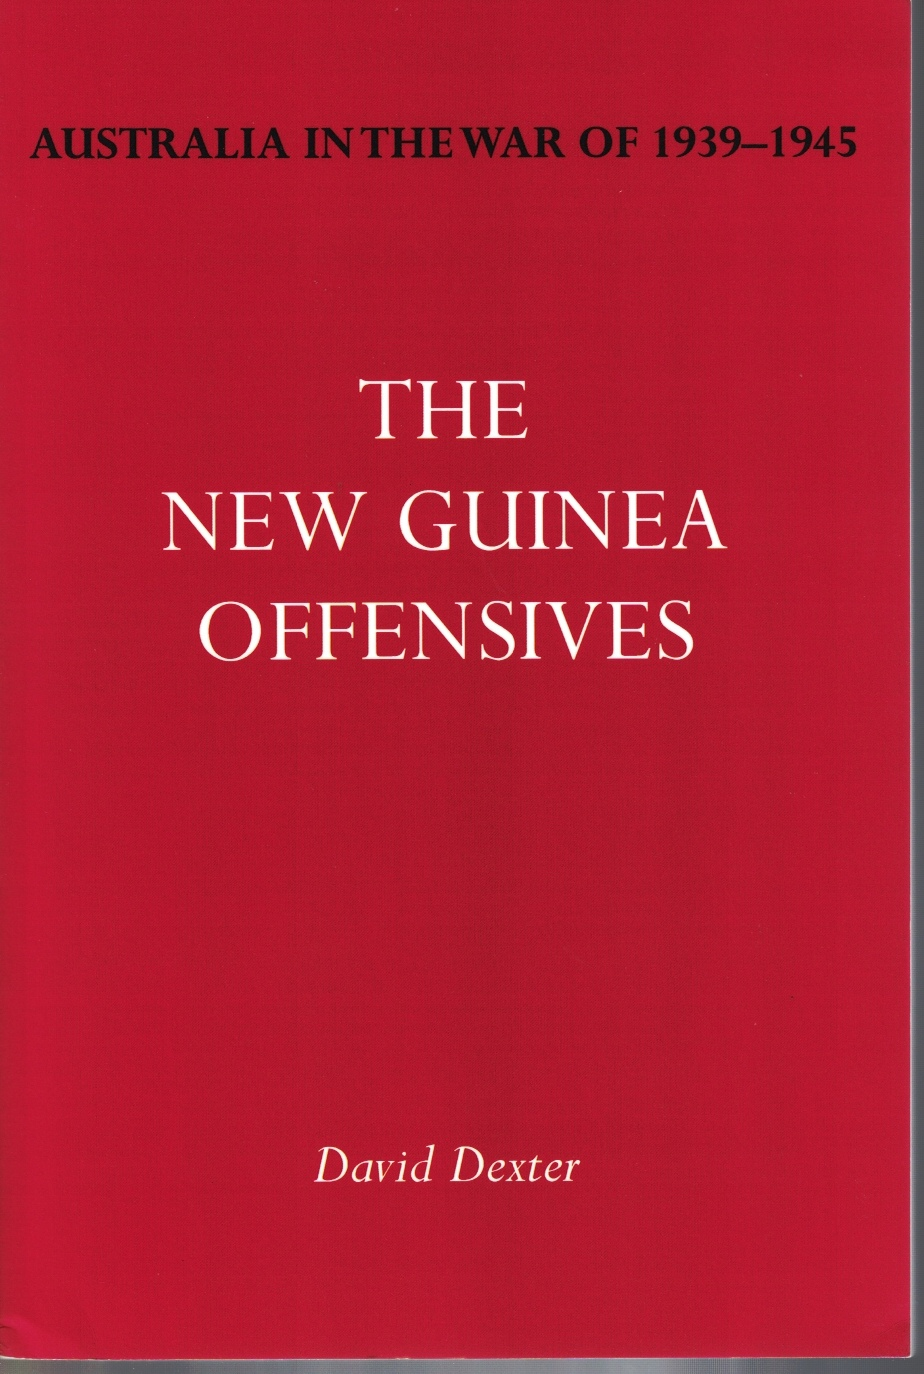 Image for The New Guinea Offensives (Australia in the War of 1939-1945)